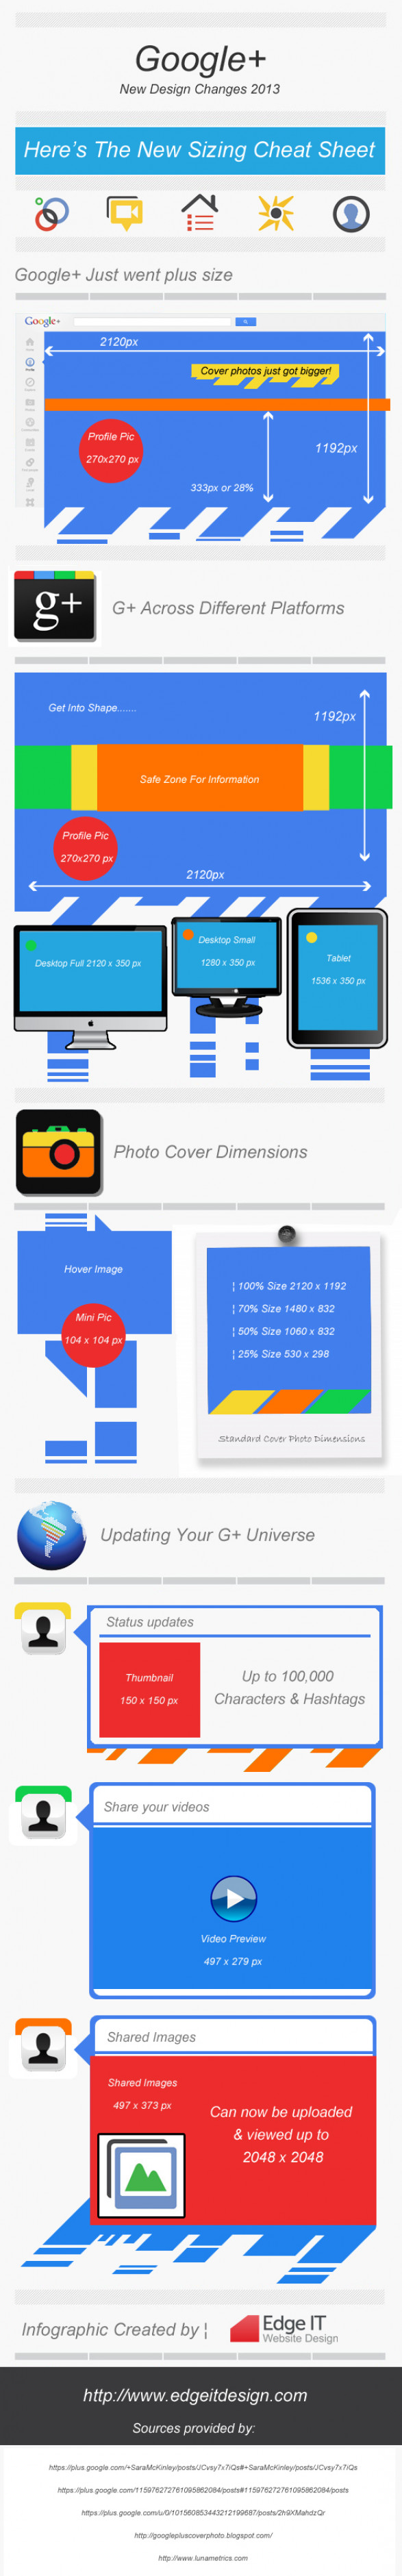 Google Plus Design Cheat Sheet 2013